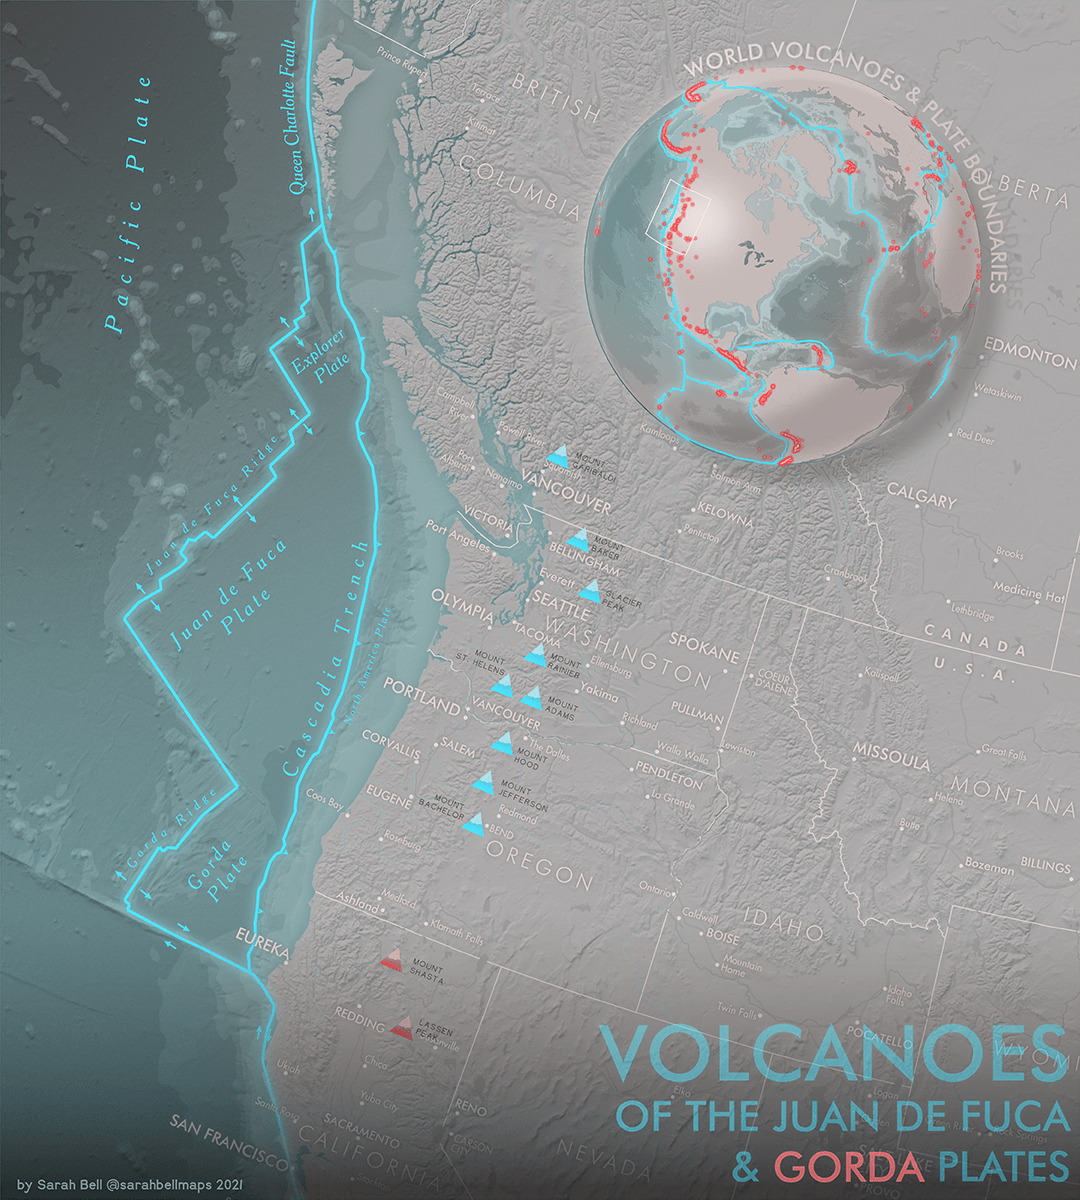 Map showing volcanoes of the Juan de Fuca and Gorda plates off North America's pacific coast